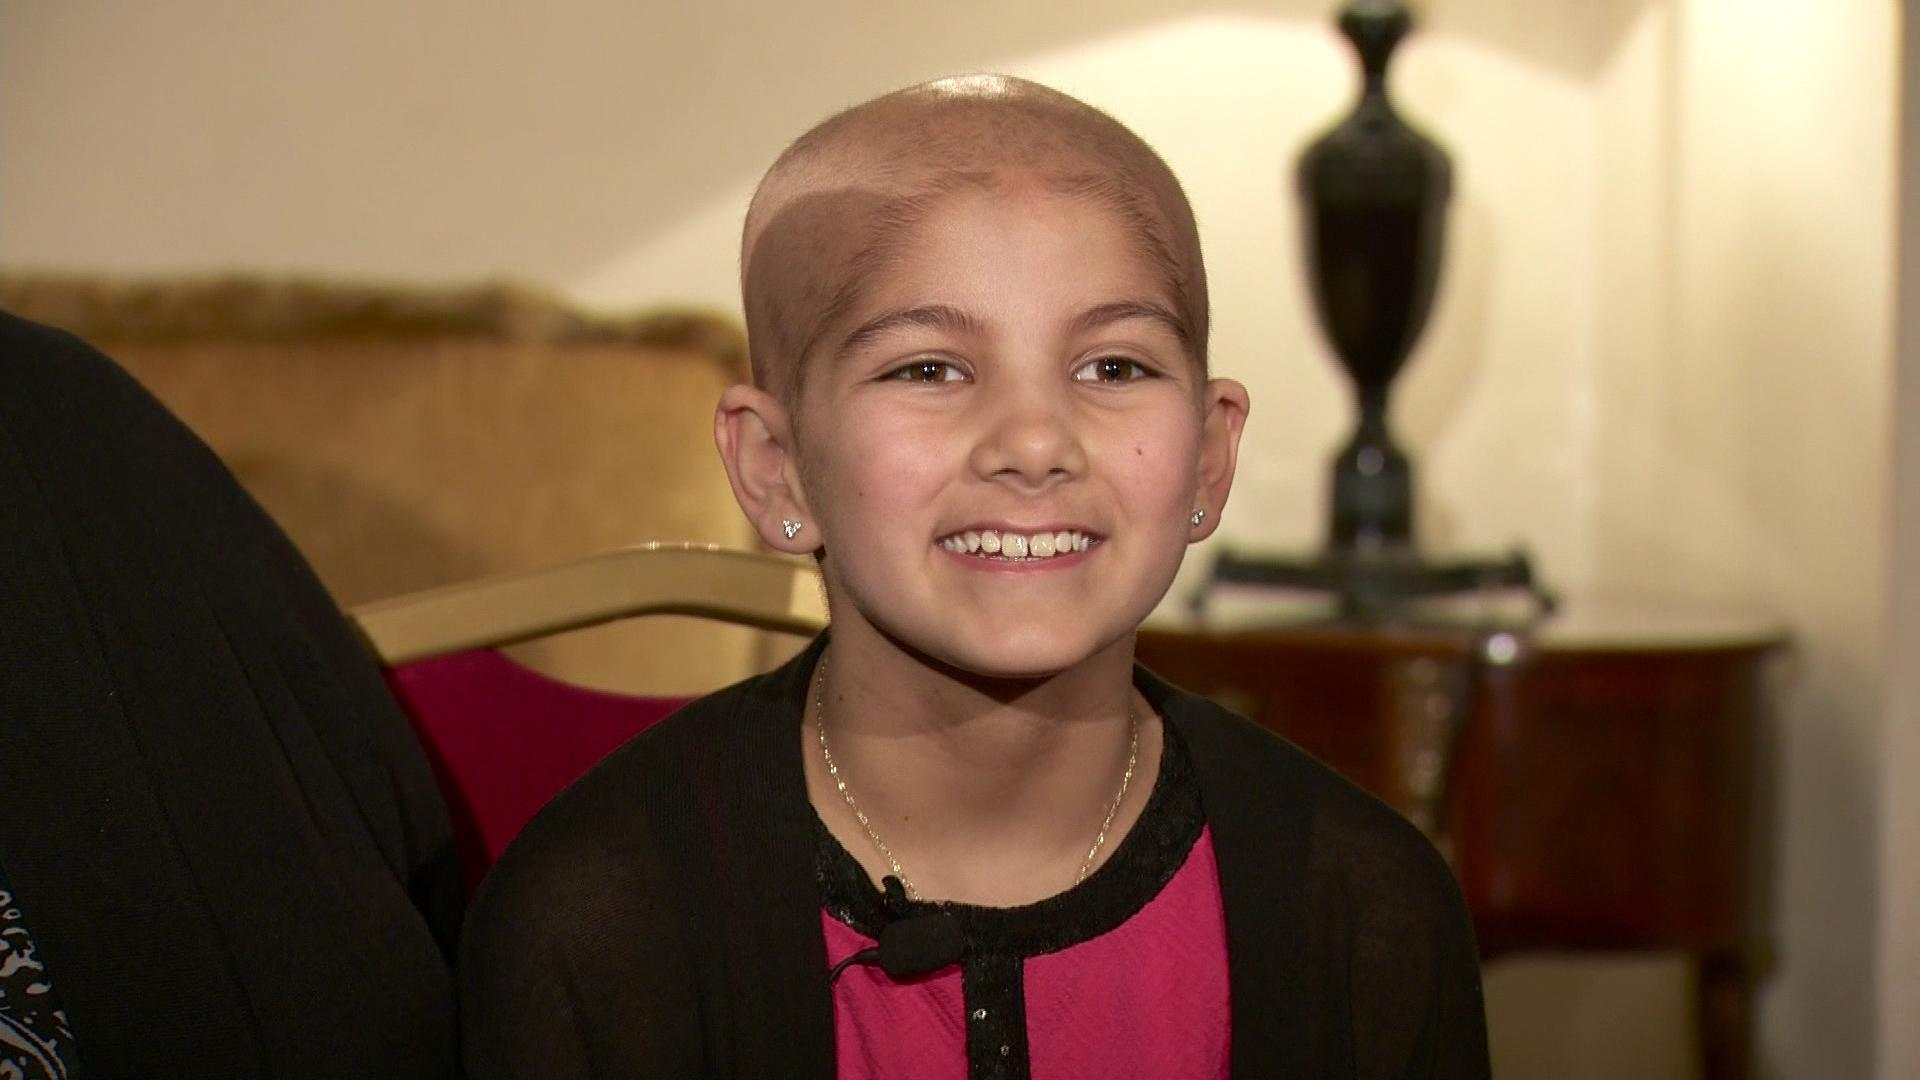 11-year-old cancer patient's papal wish granted